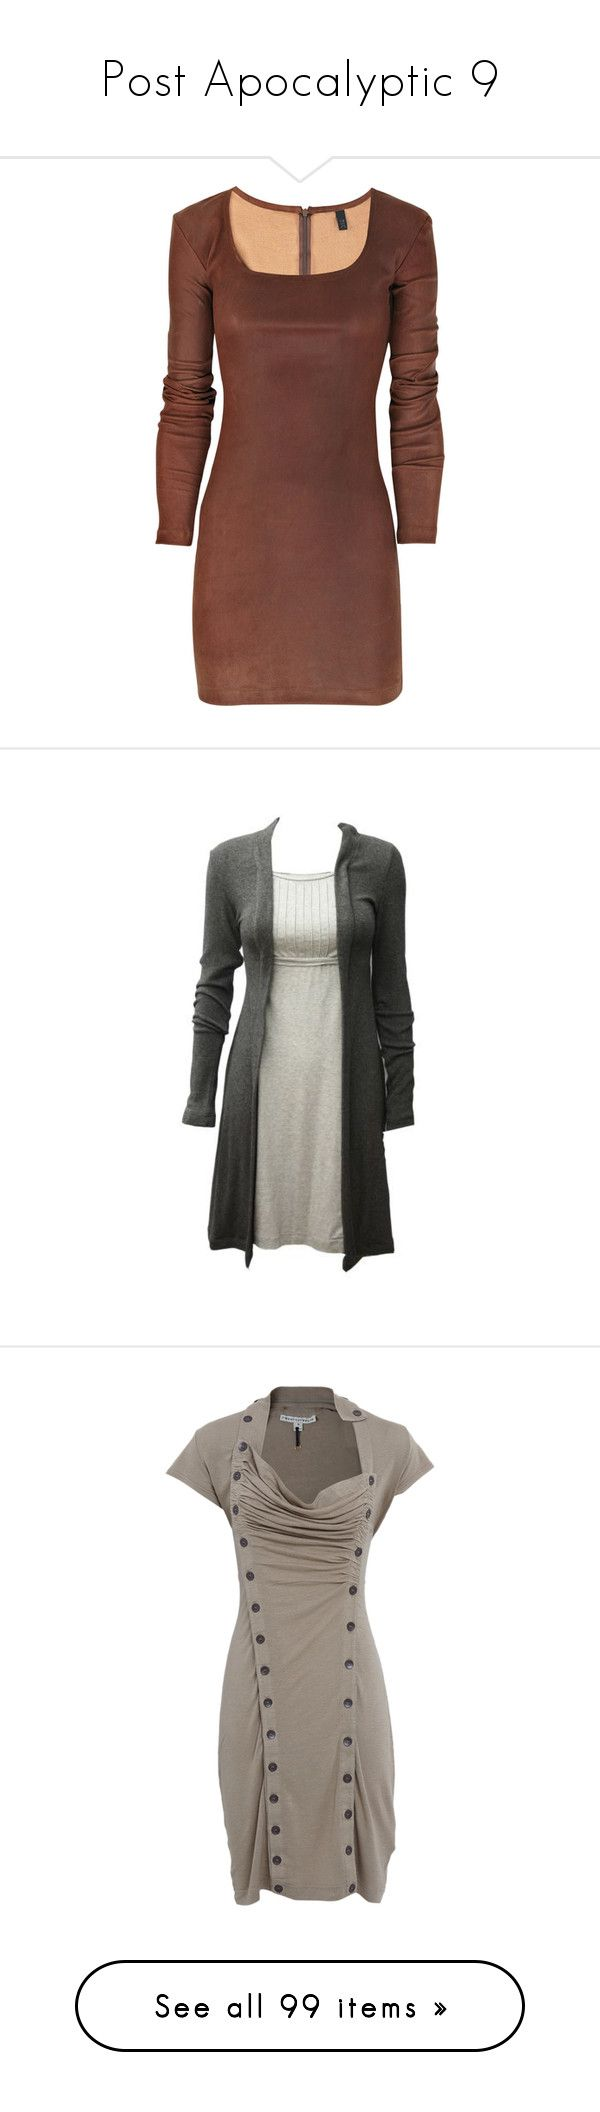 """""""Post Apocalyptic 9"""" by eternius ❤ liked on Polyvore featuring dresses, vestidos, short dresses, robes, women, leather cocktail dress, short brown dress, stretch dresses, leather mini dress and brown dress"""